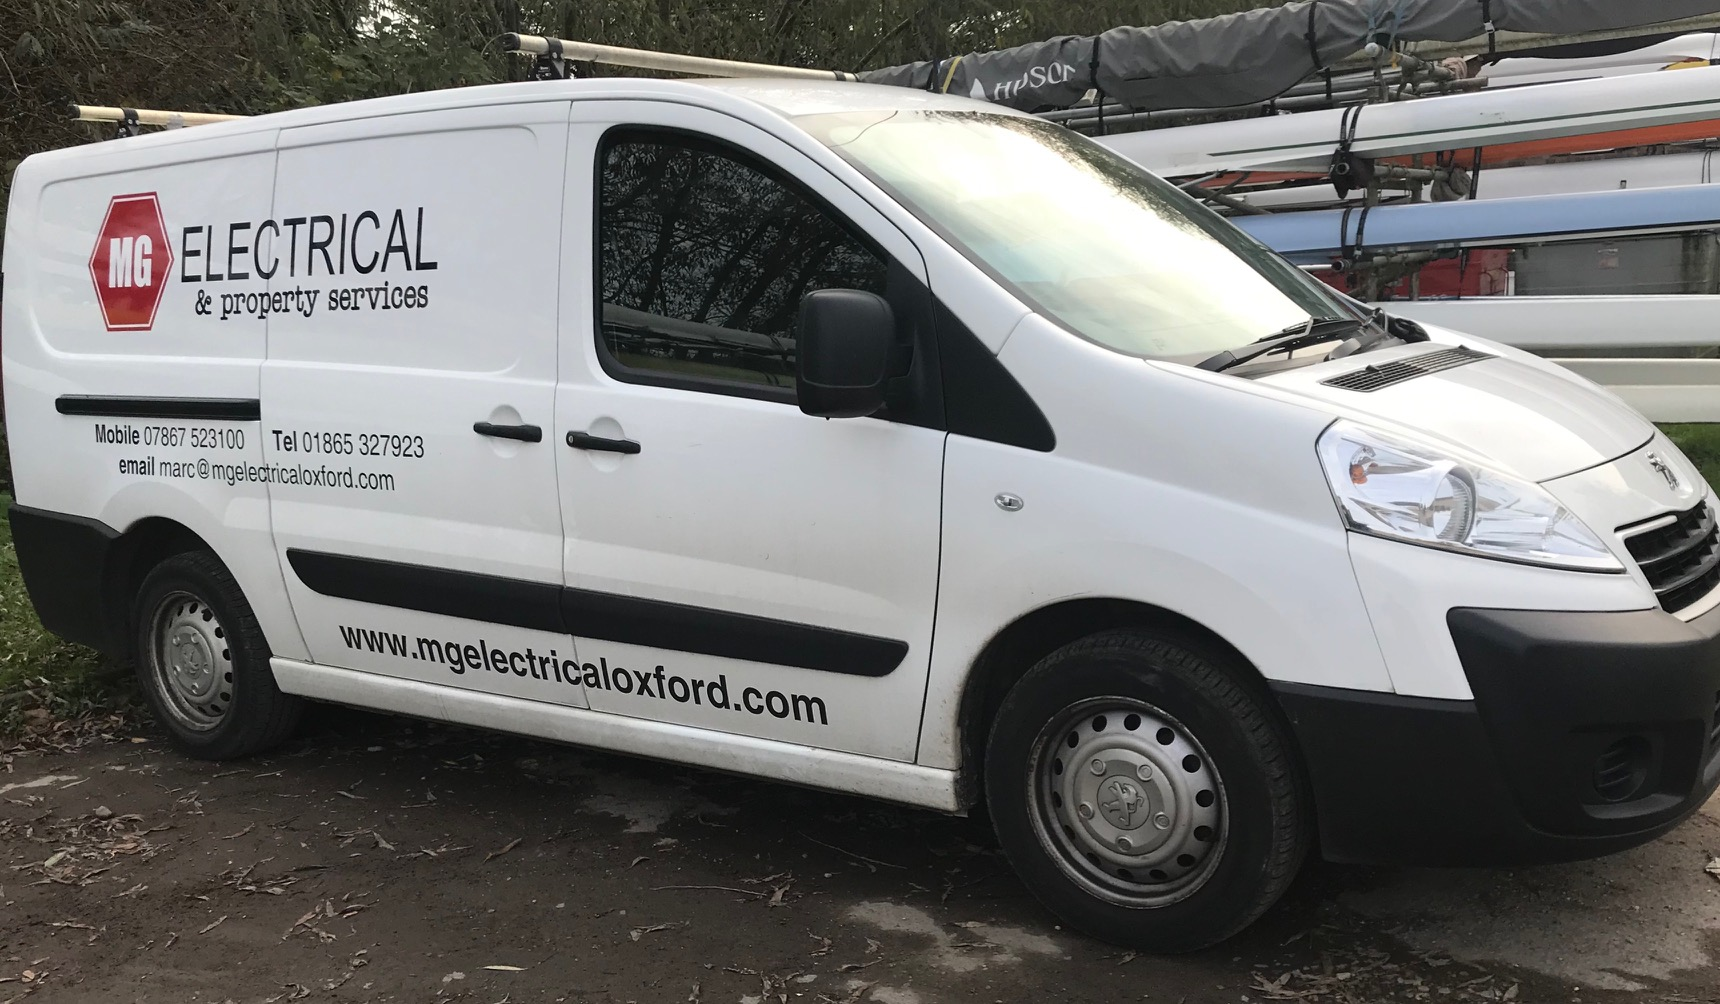 MG Electrical and Property Services Oxford